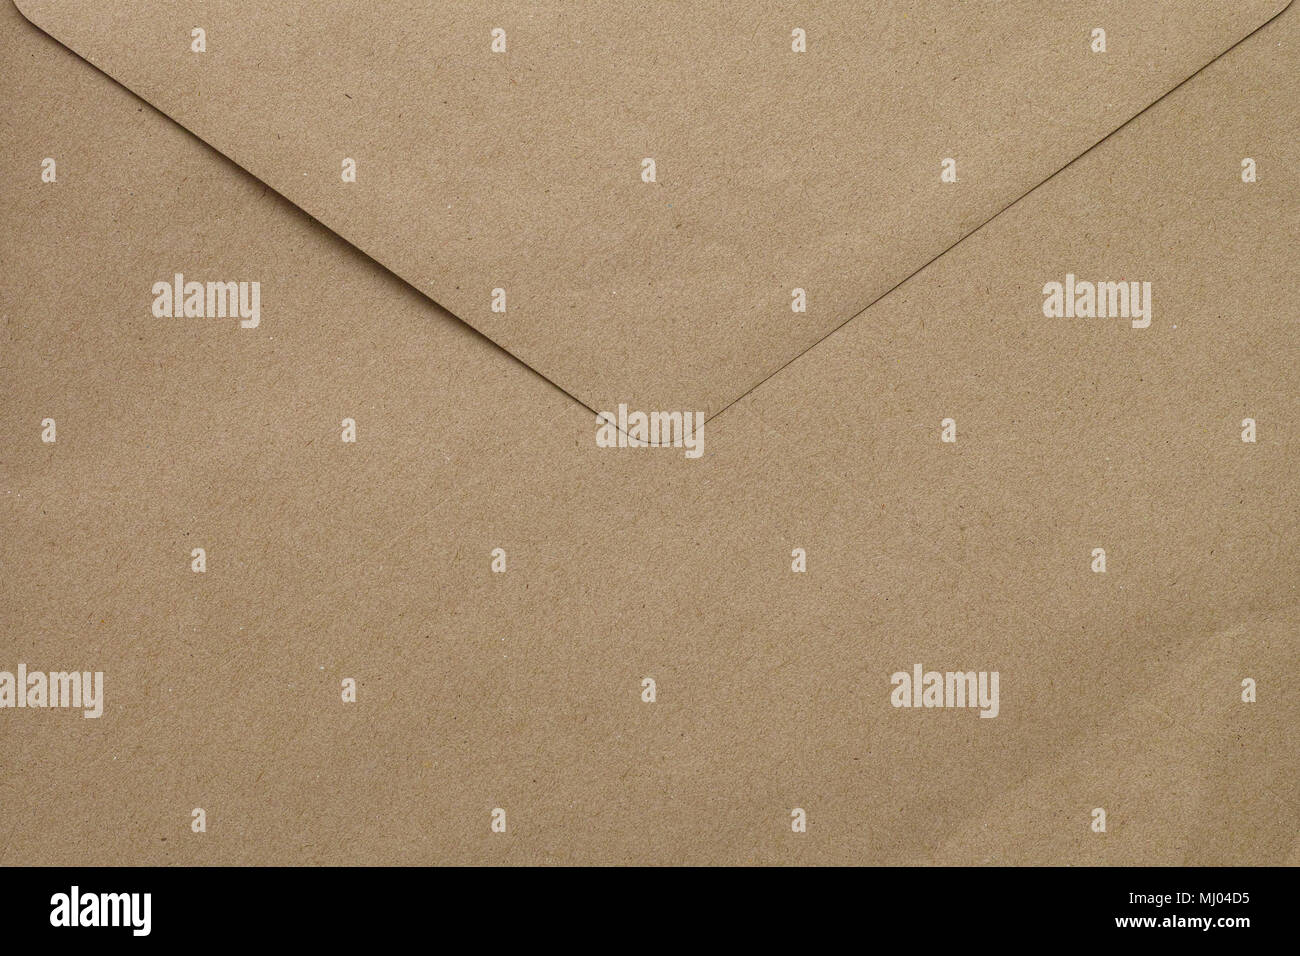 Brown Paper Texture Background Use Us Kraft Stationery Or Envelope